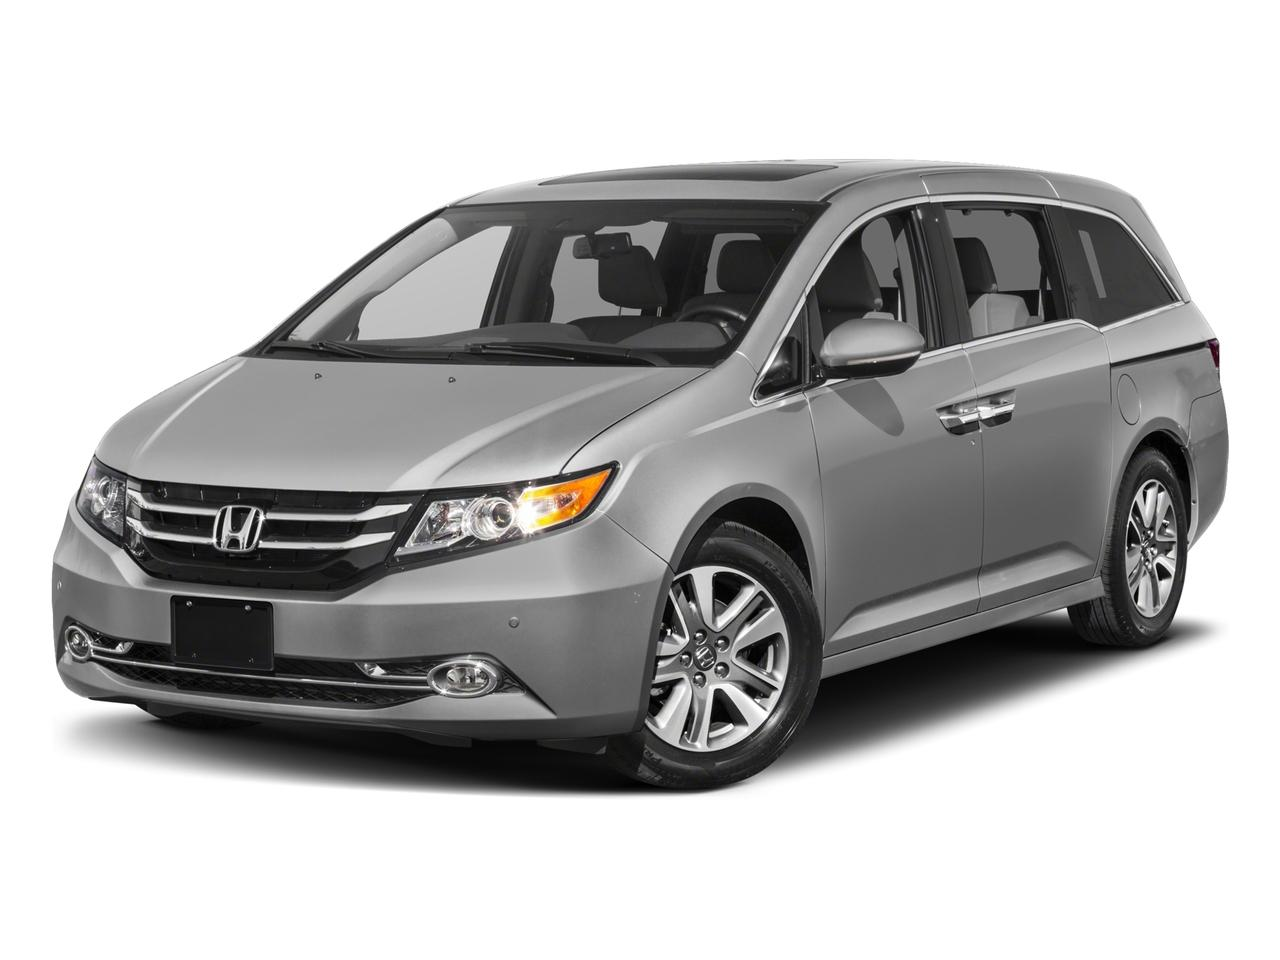 2017 Honda Odyssey Vehicle Photo in BEND, OR 97701-5133